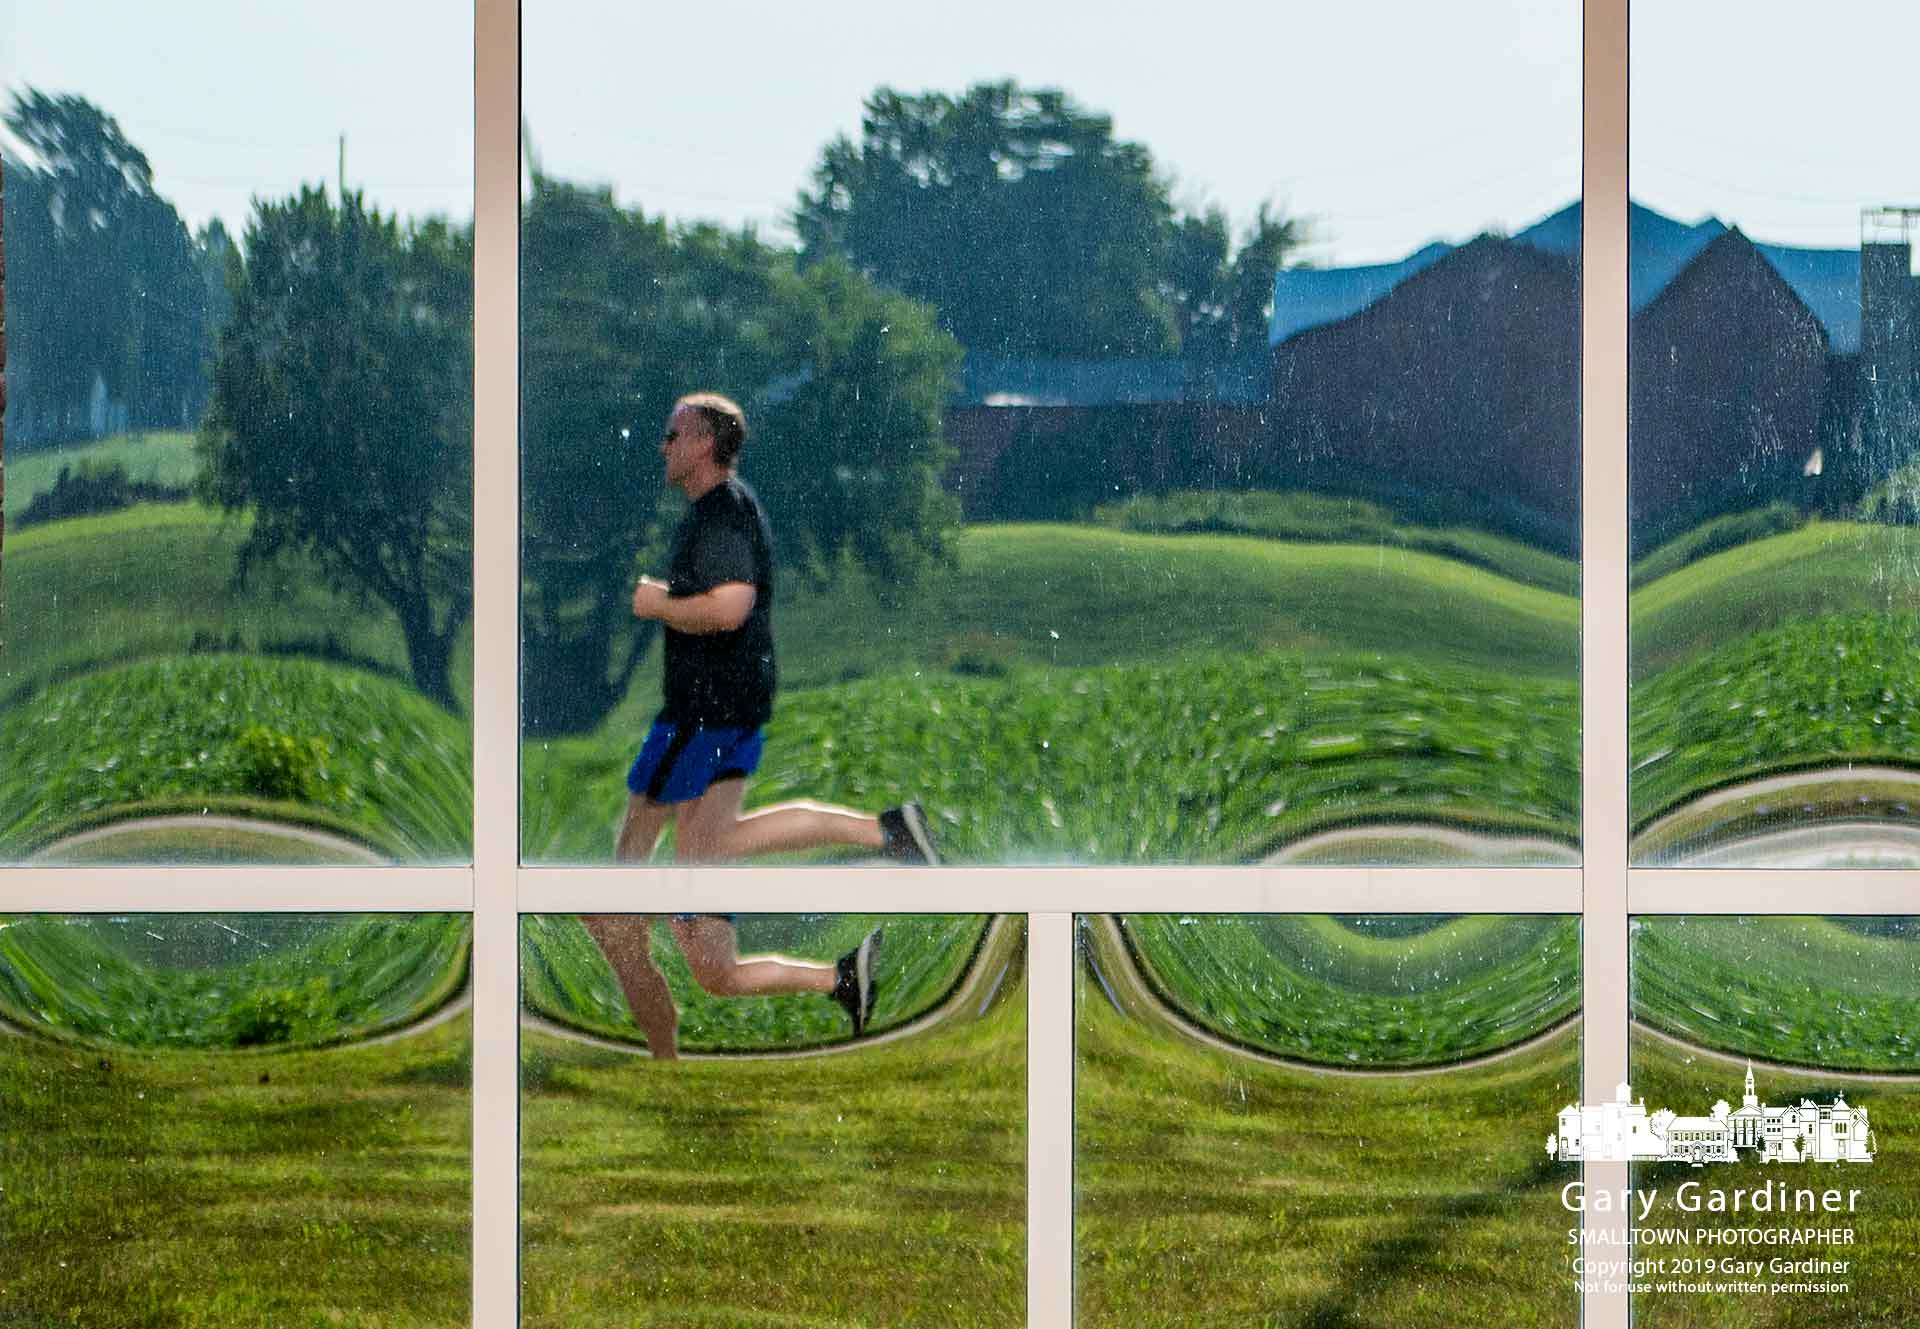 A runner and the Yarnell Farm fields and barn are reflected in the Mac Tools office building as he runs along Cleveland Ave. in early morning. My Final Photo for Aug. 3, 2019.